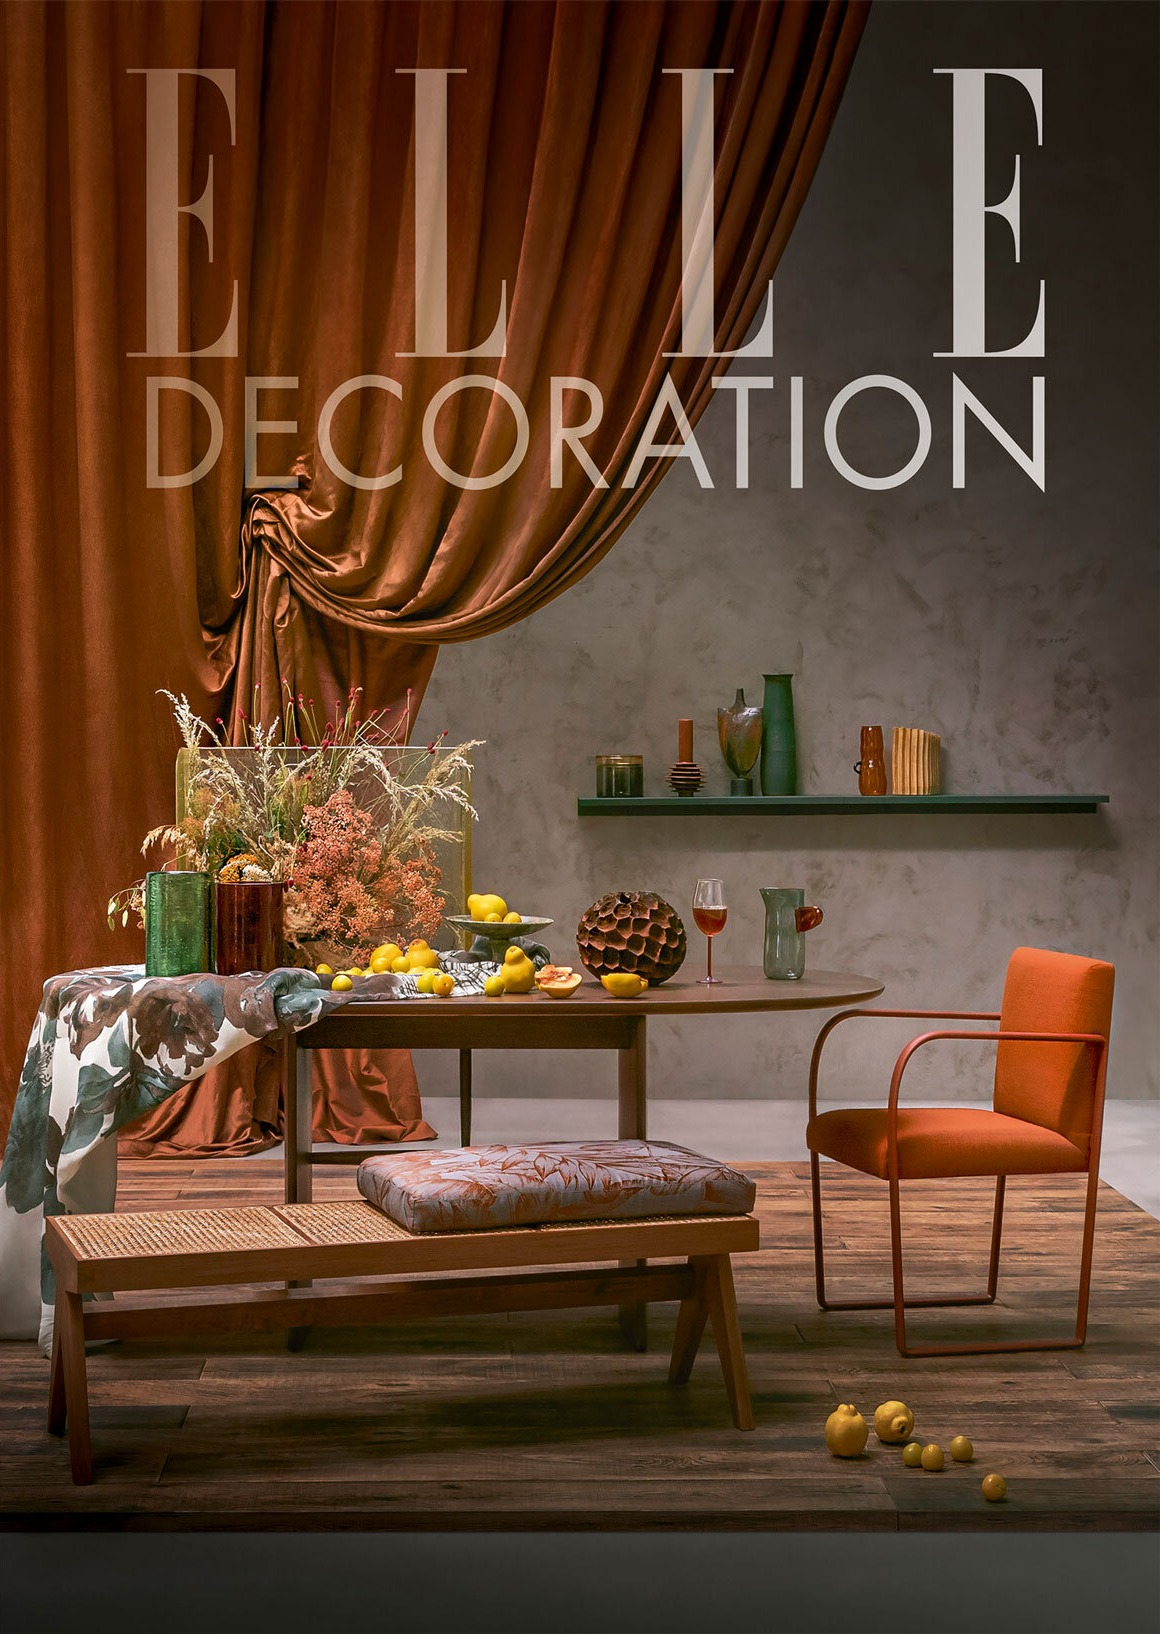 Elle Decoration / Alex Kristal / Beppe Brancato